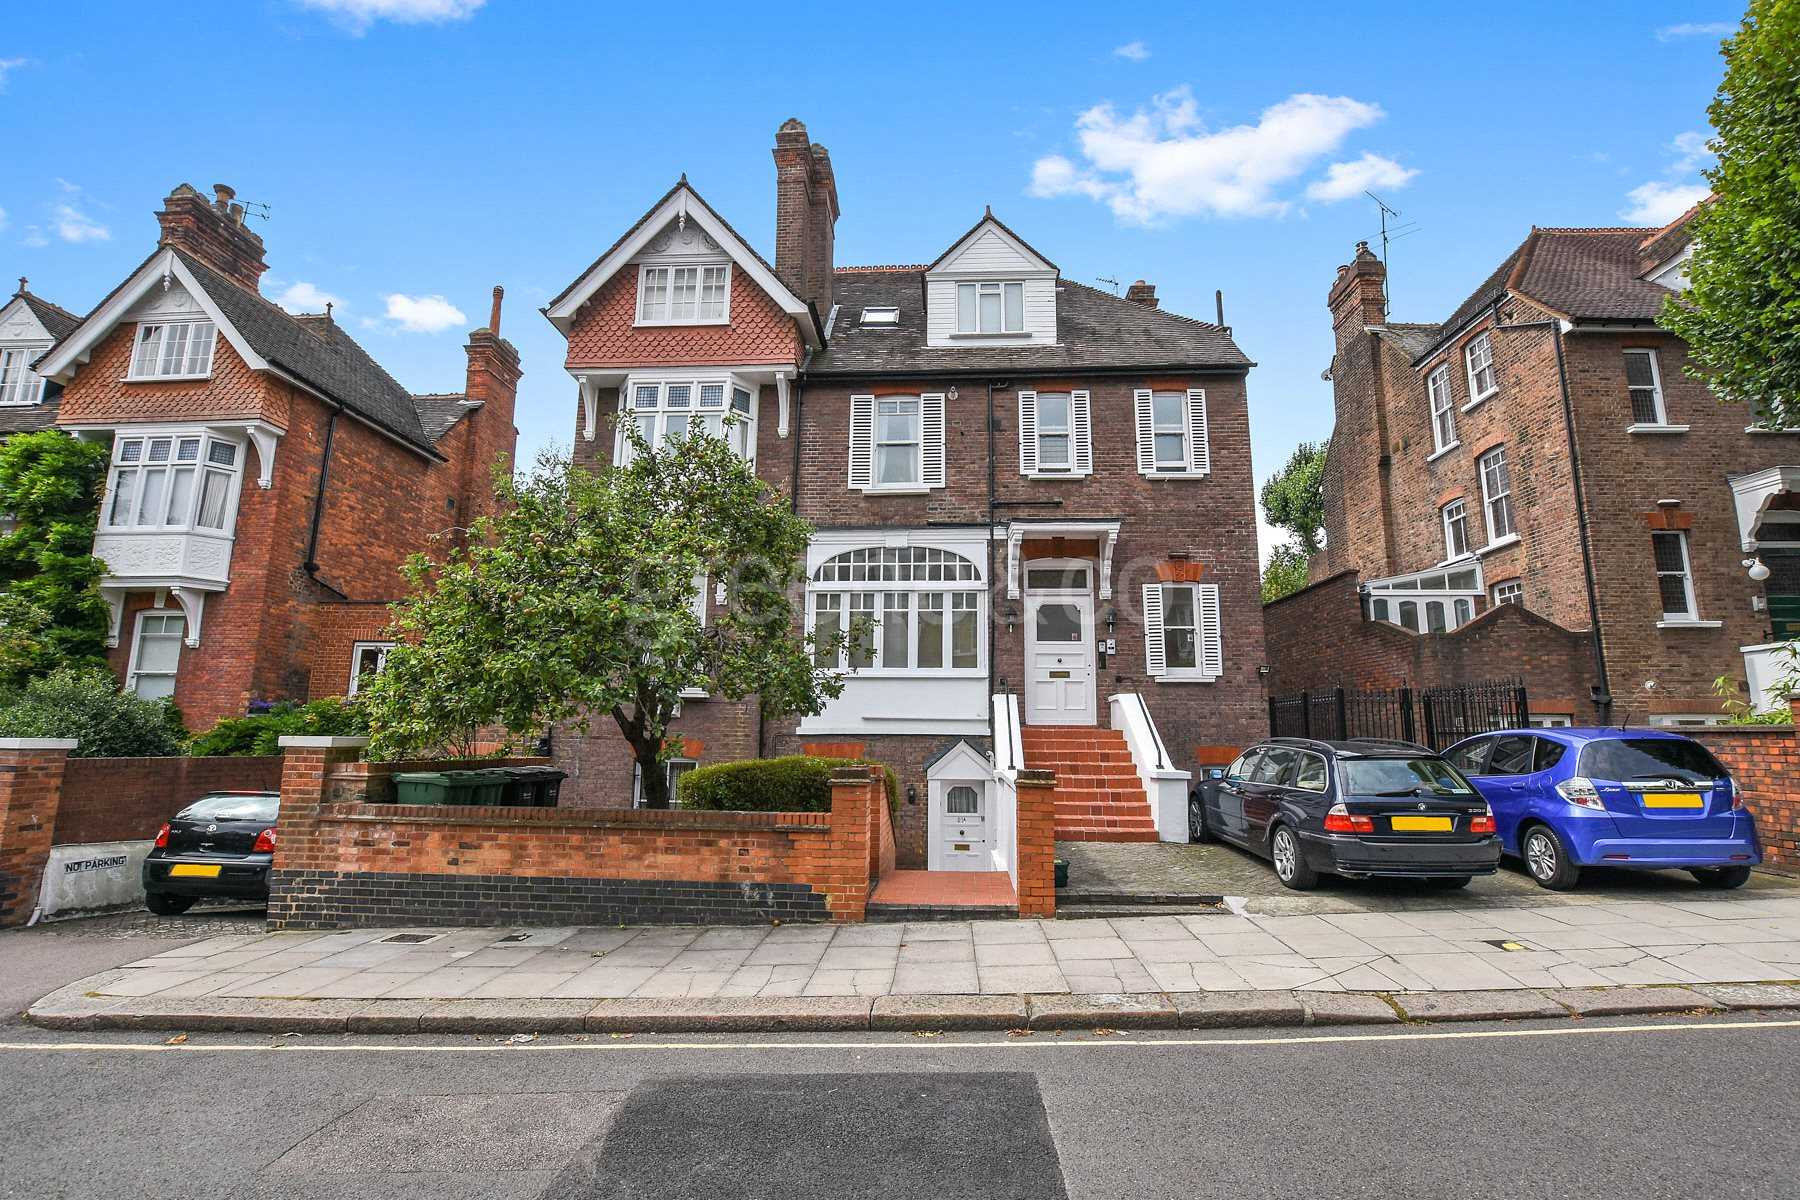 2 Bedrooms Flat for sale in Daleham Gardens, Belsize Park, London, NW3